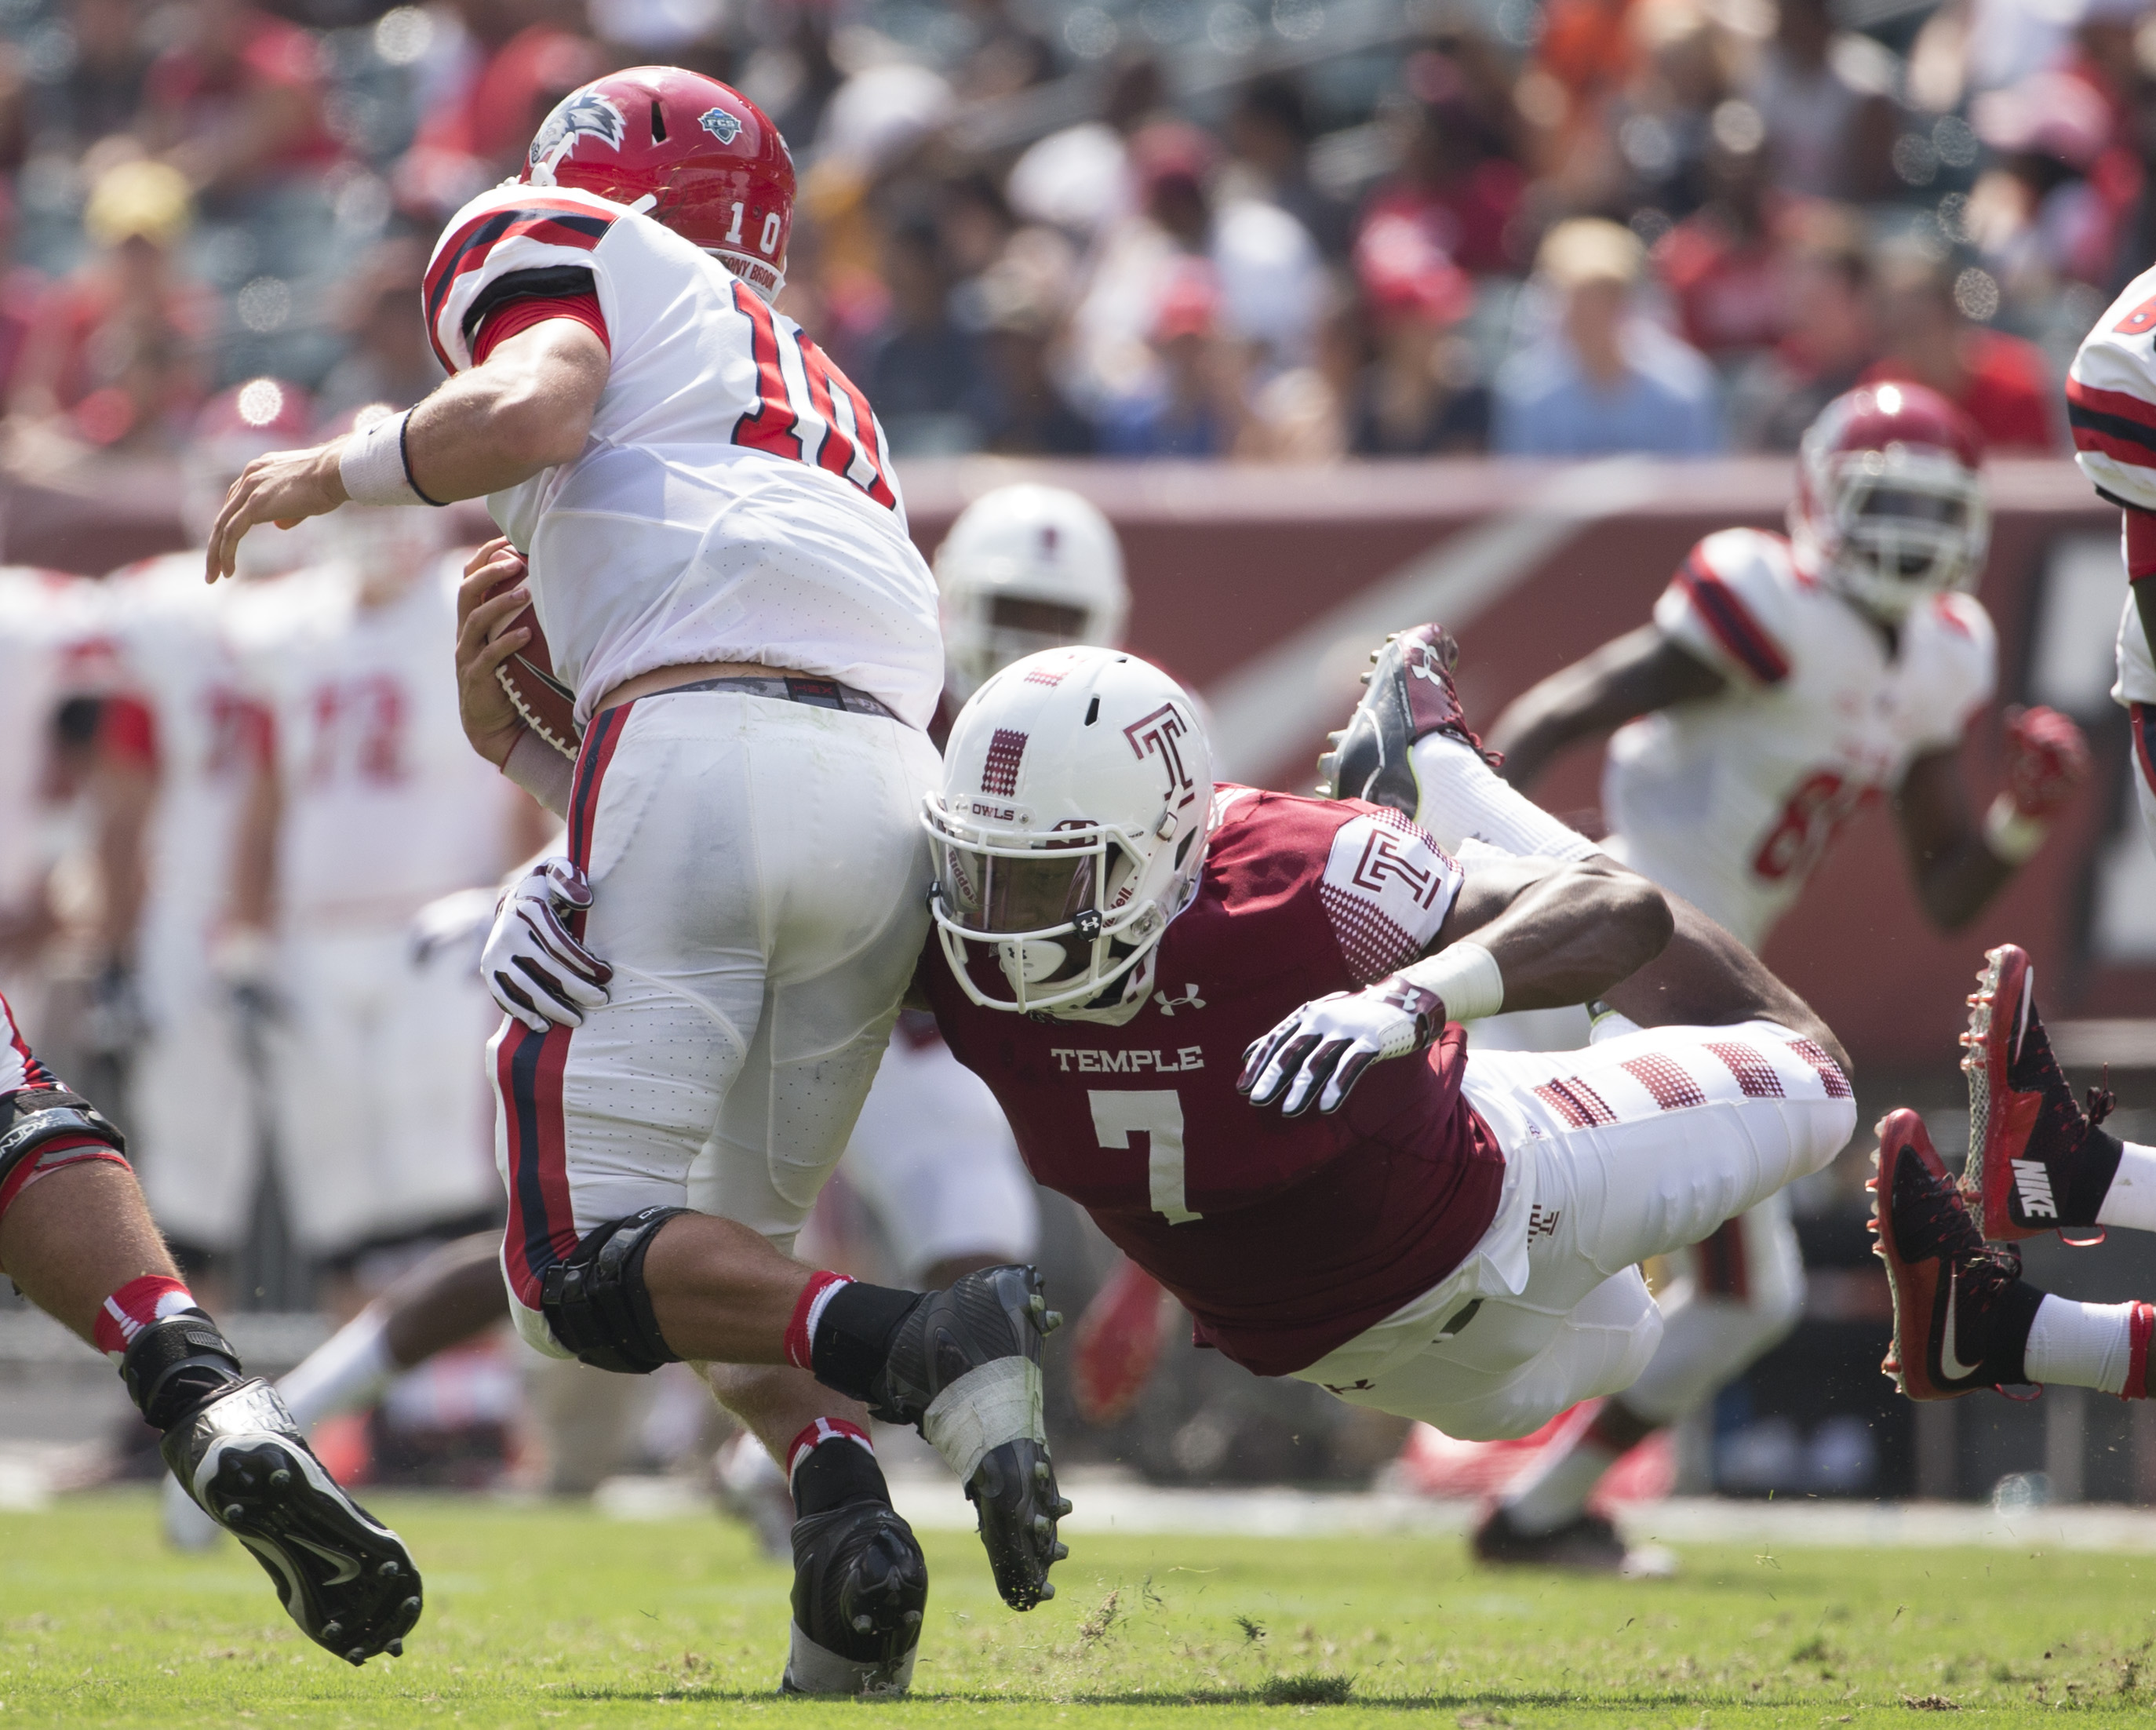 Haason Reddick of the Temple Owls sacks Joe Carbone of the Stony Brook Seawolves on September 10, 2016. (Photo by Mitchell Leff/Getty Images)